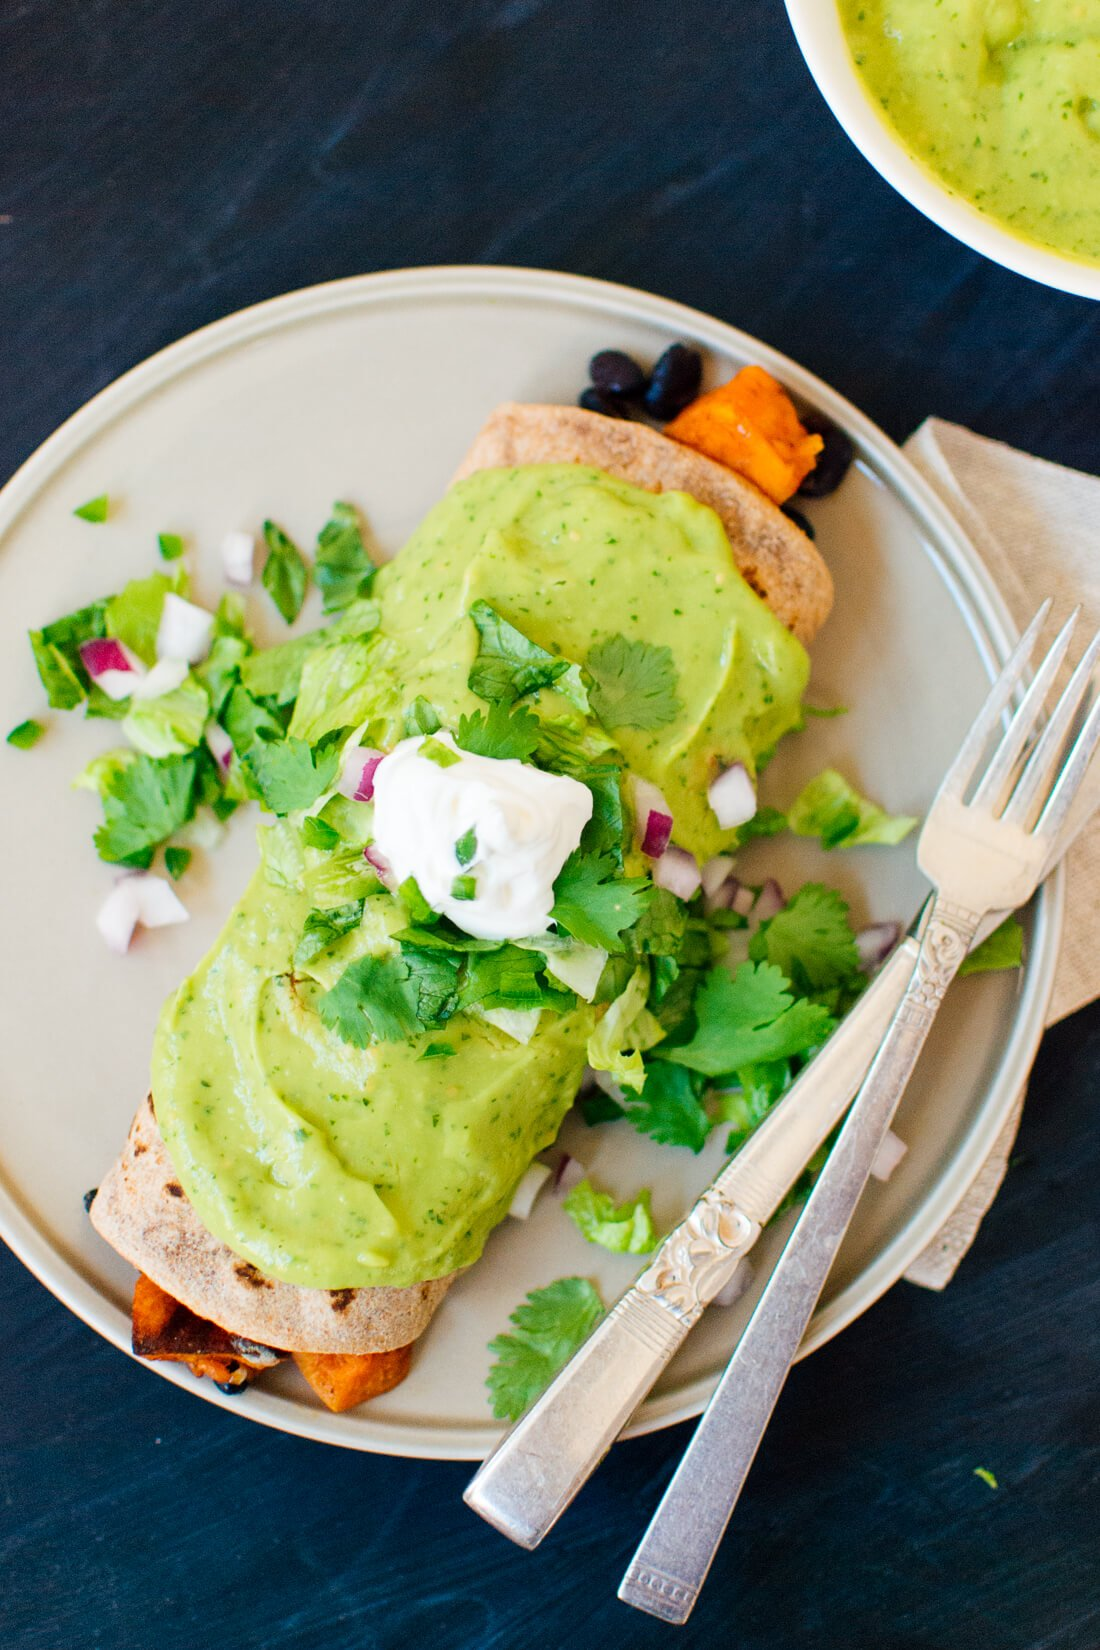 Sweet potato burrito with avocado sauce and sour cream